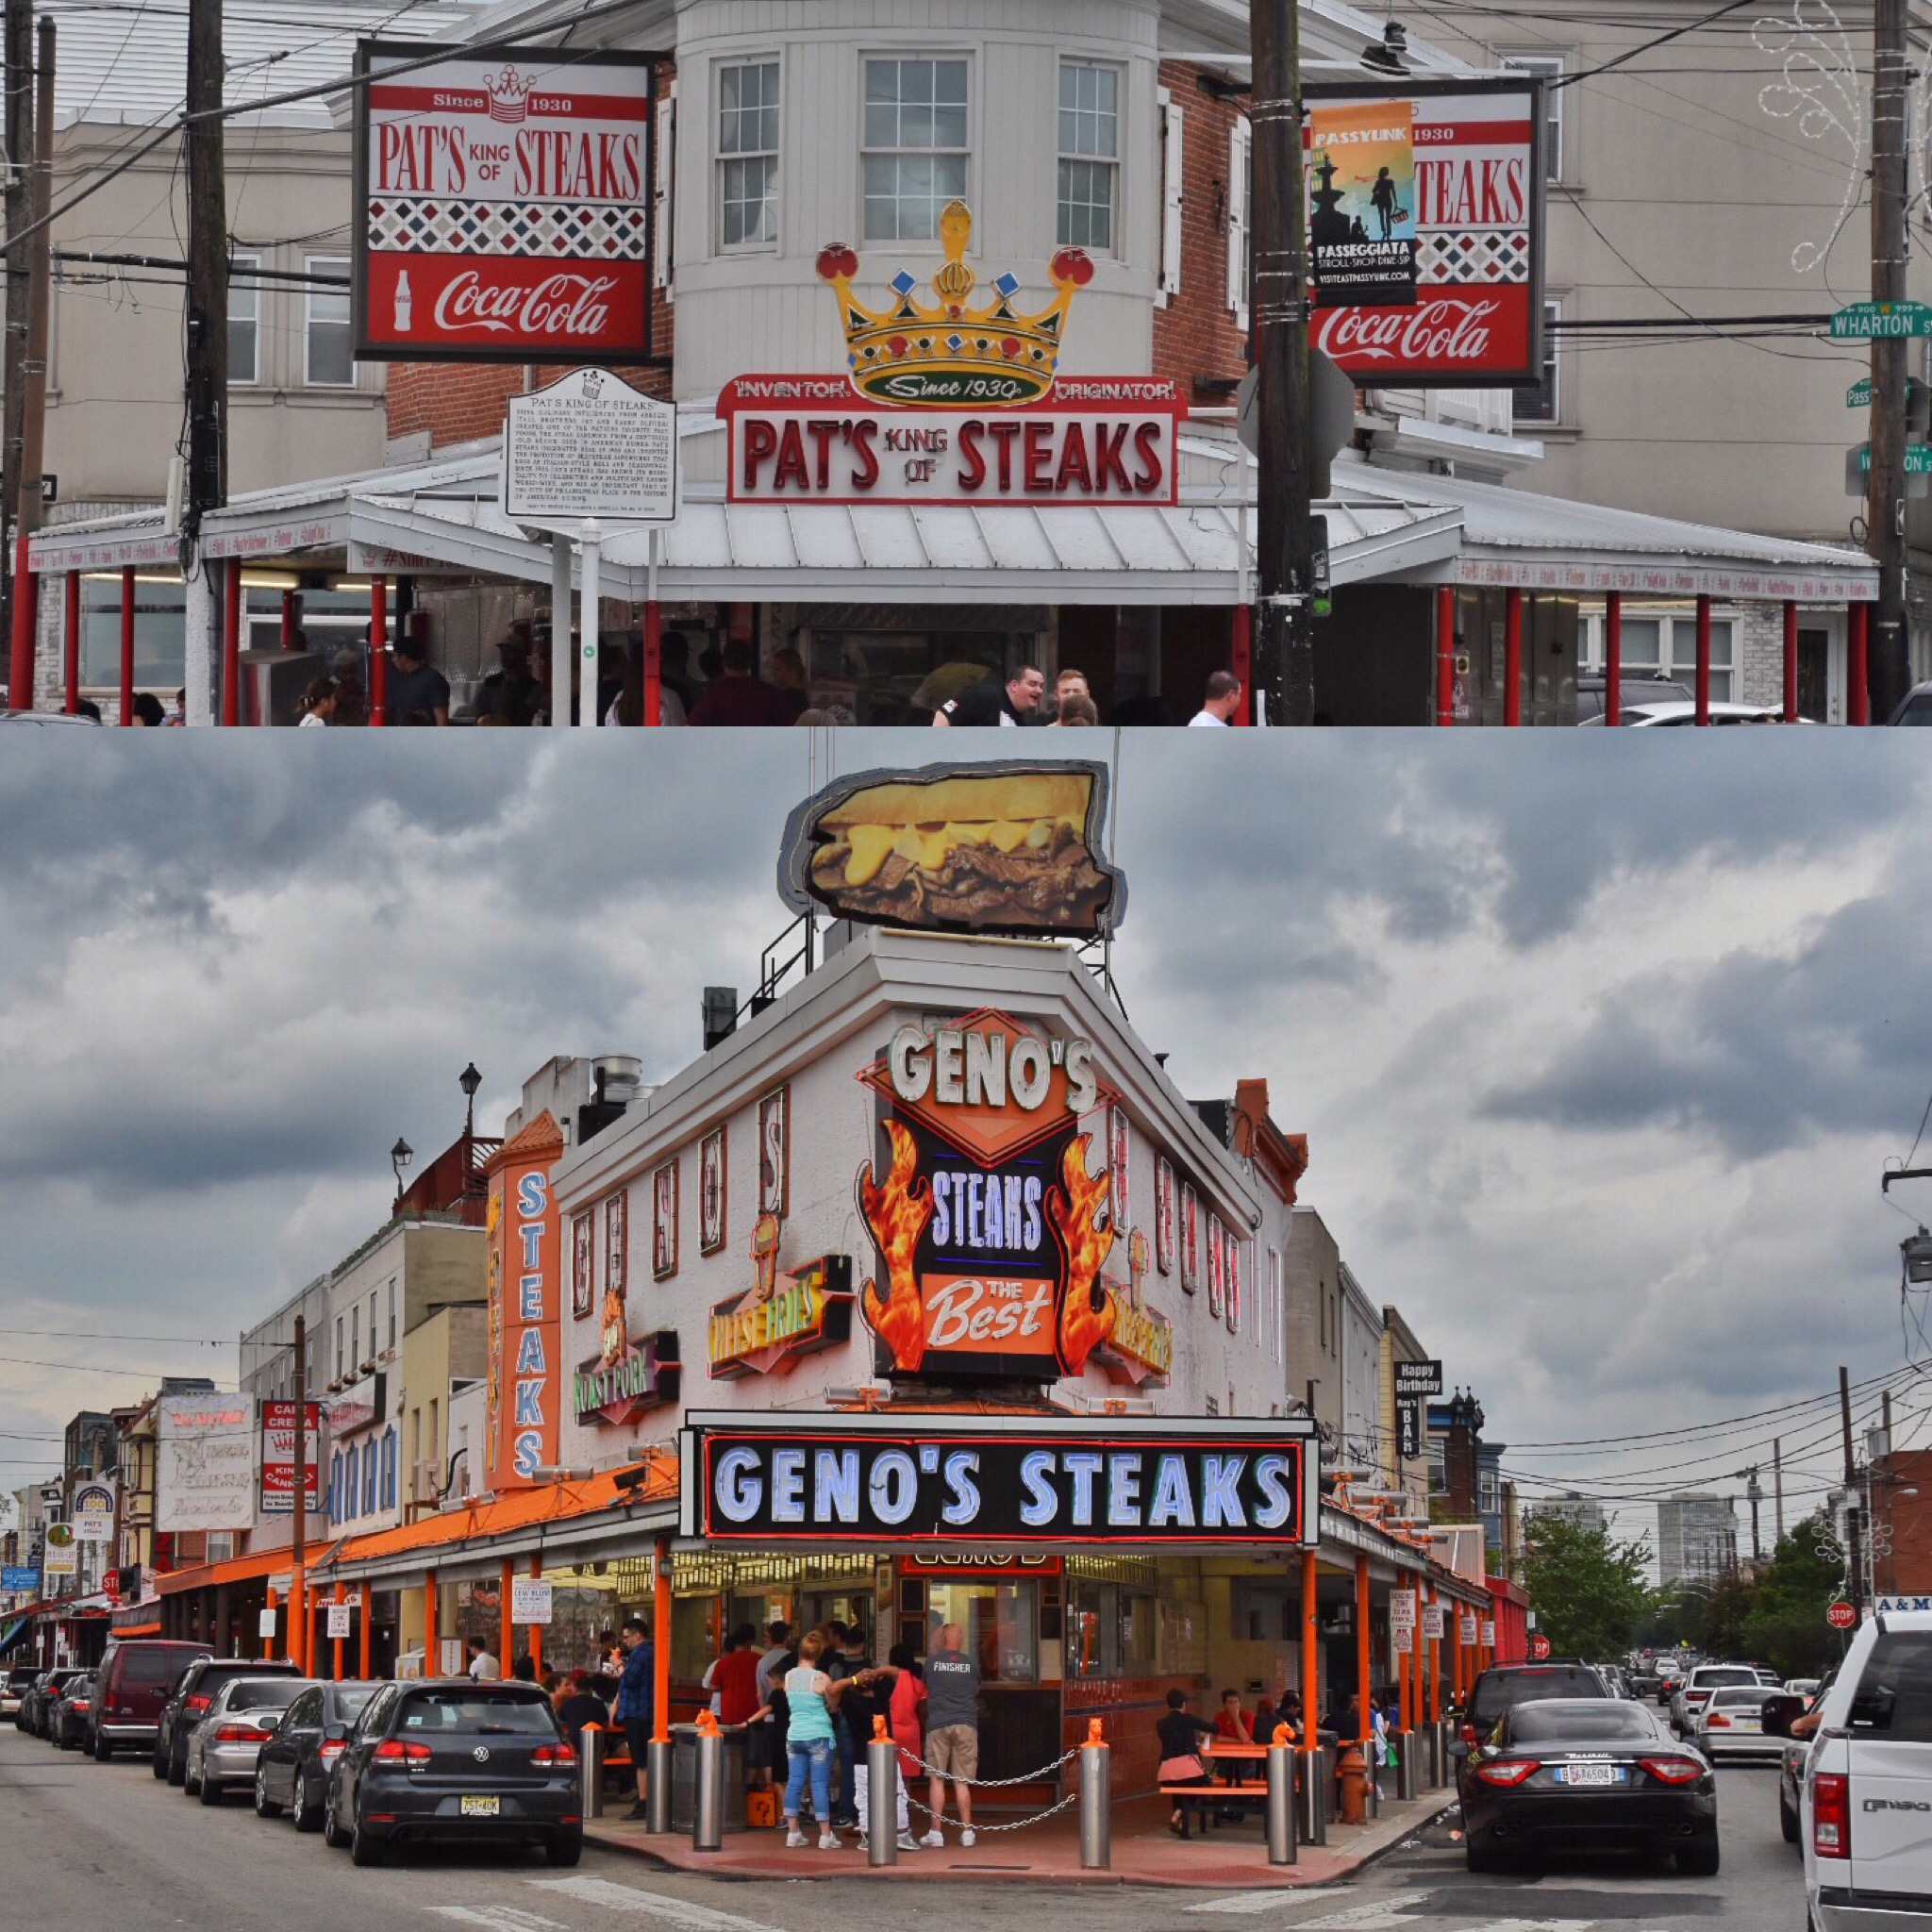 The dueling steakhouses of Geno's and Pat's.  Serious decisions must be made.